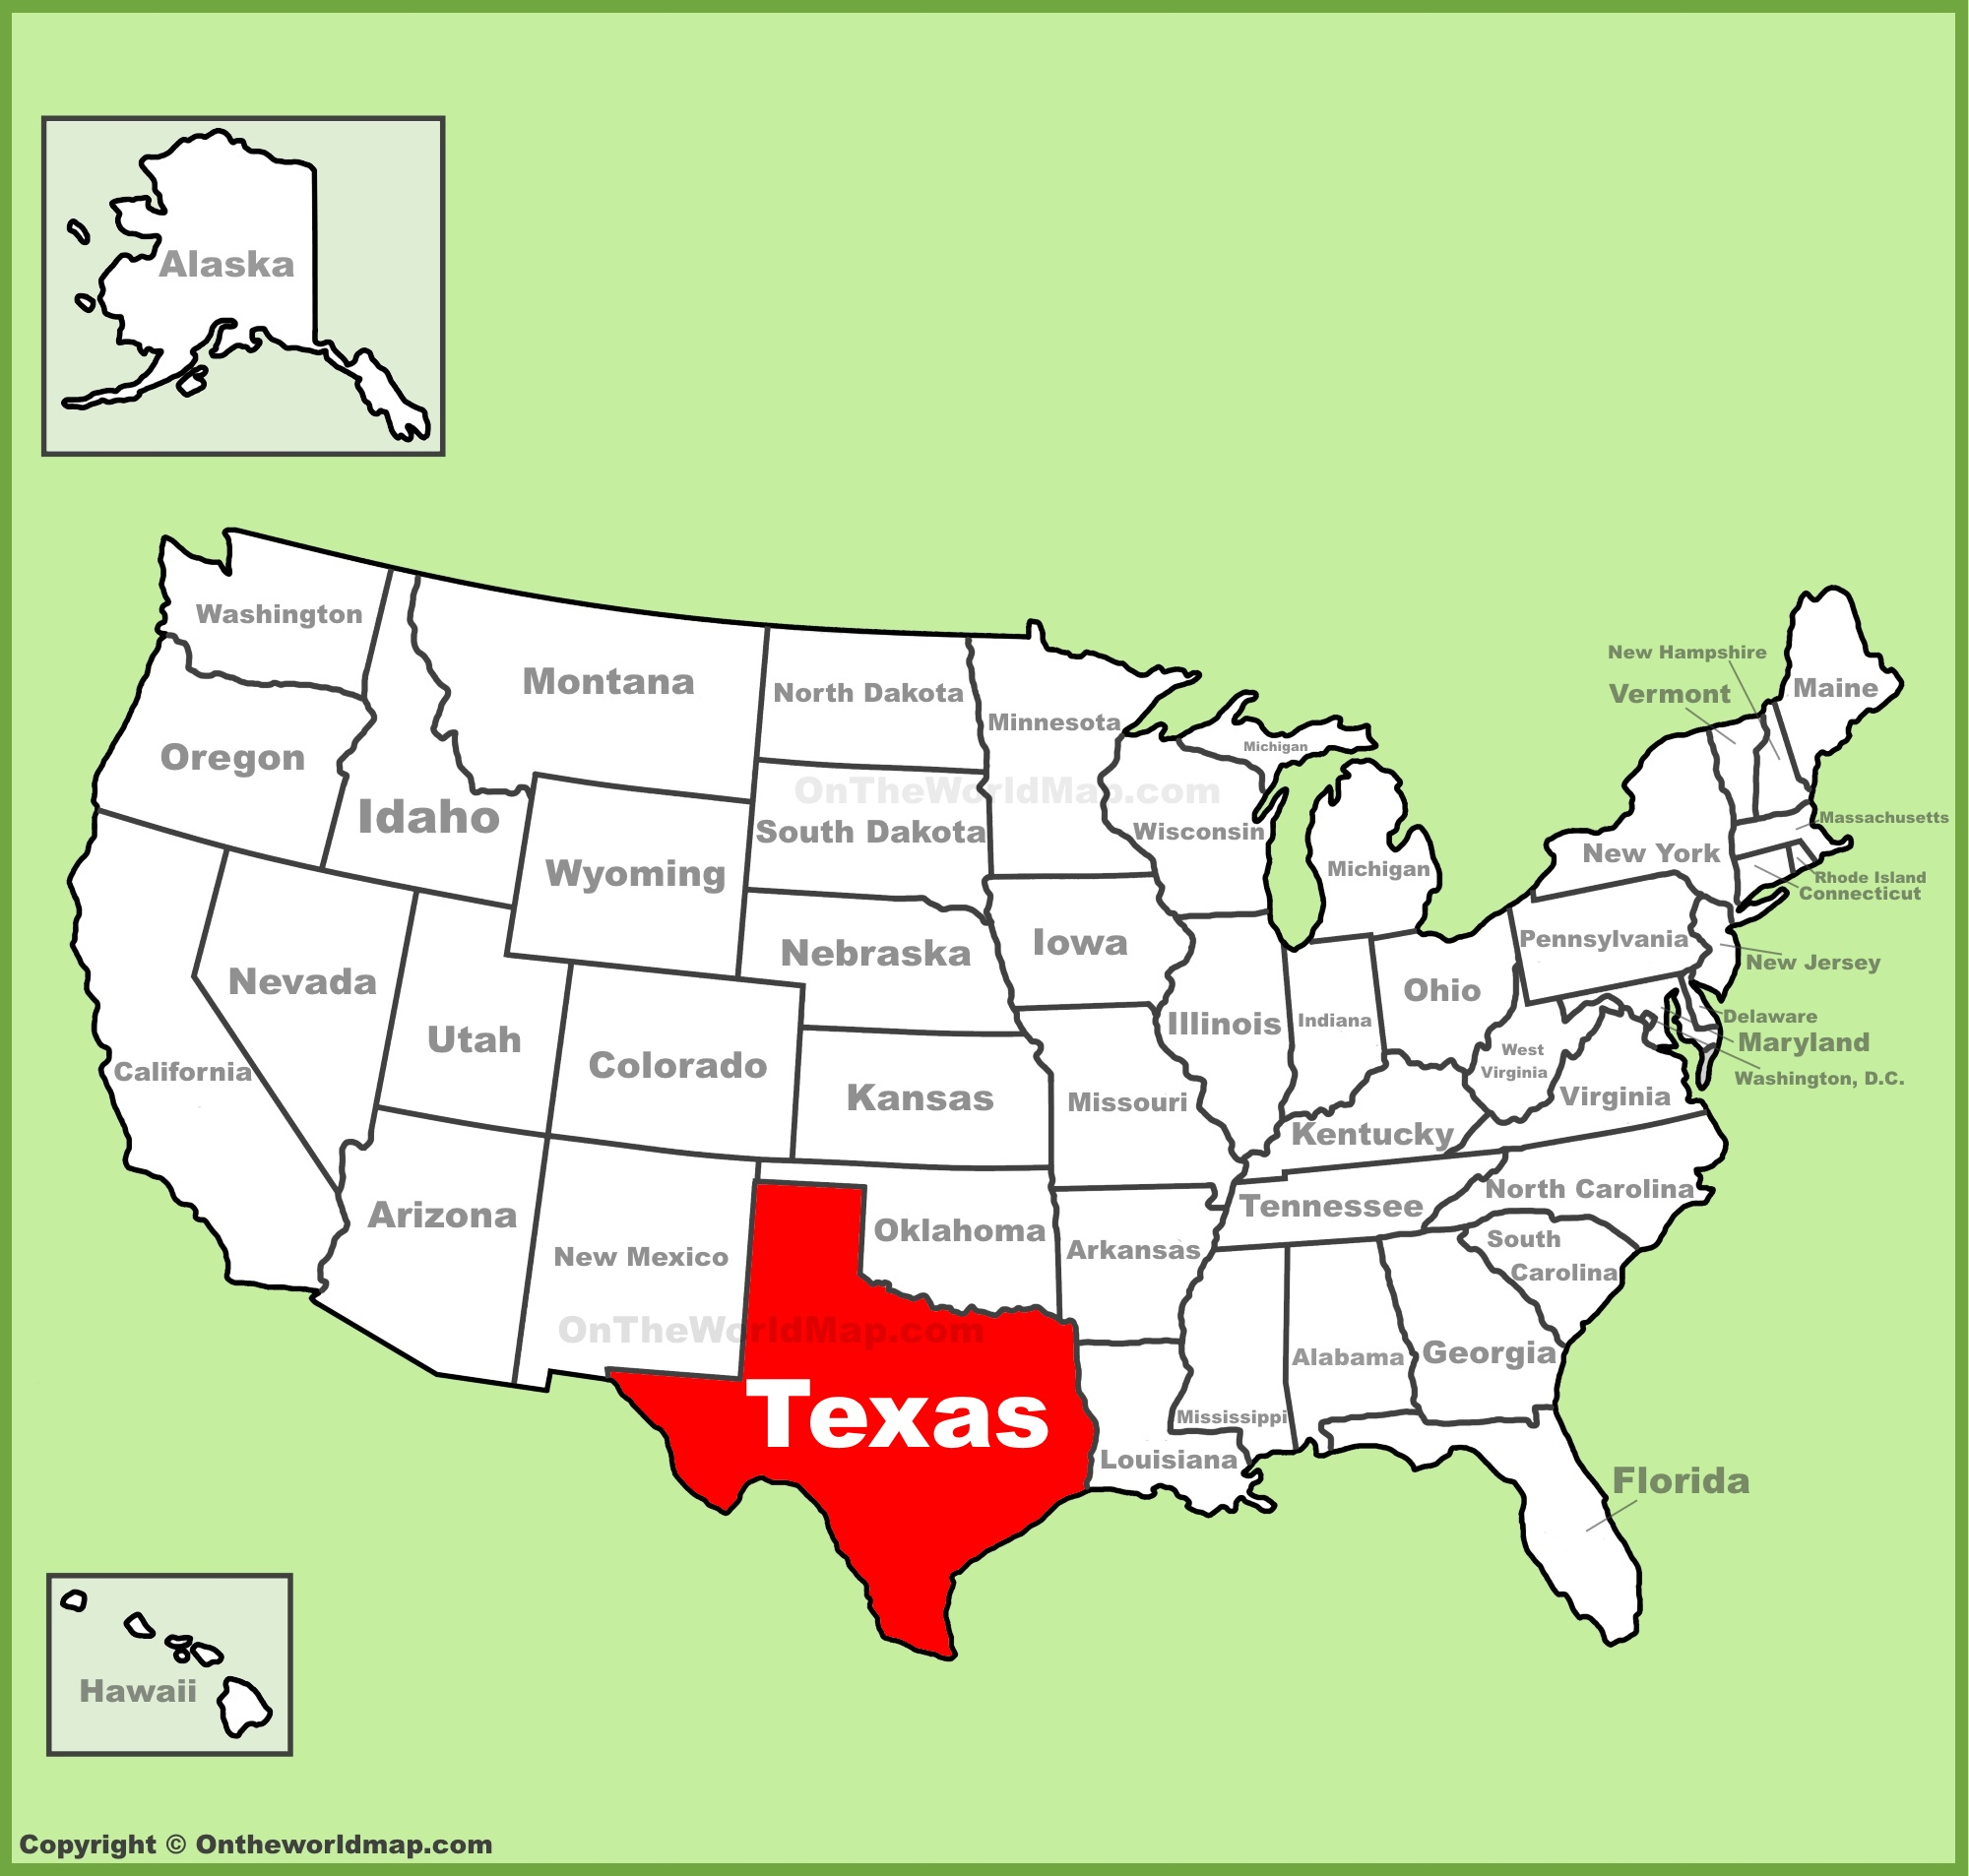 Map Of America Texas.Texas Location On The U S Map